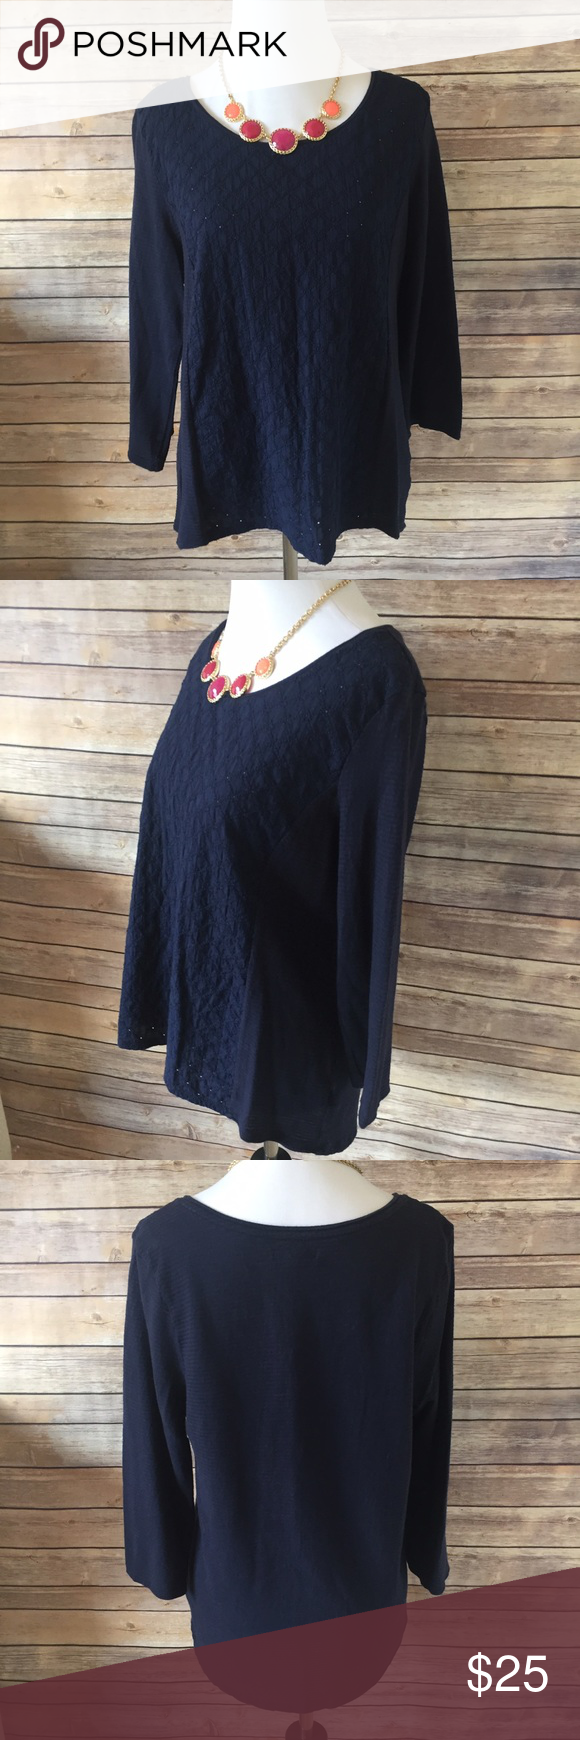 GAP Dark Blue Top Beautiful dark blue top from the Gap. Flower inspired facets on the front and a slightly ribbed fabric on the 3/4 length sleeves and back. Size large. 100% cotton. Great used condition. GAP Tops Tees - Long Sleeve